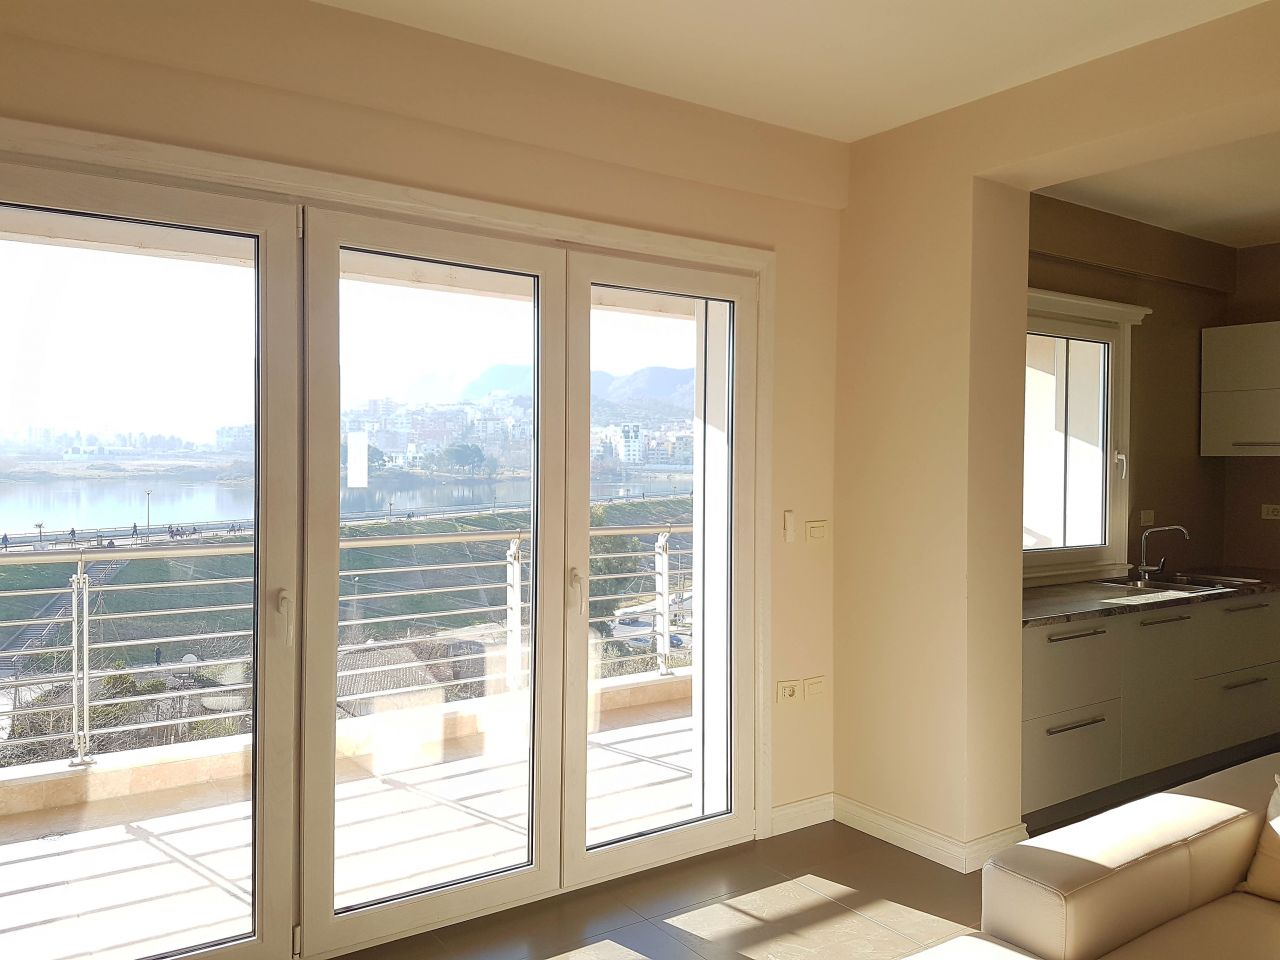 apartment for rent in tirana with 2 bedrooms in nobis center near the park of Tirana